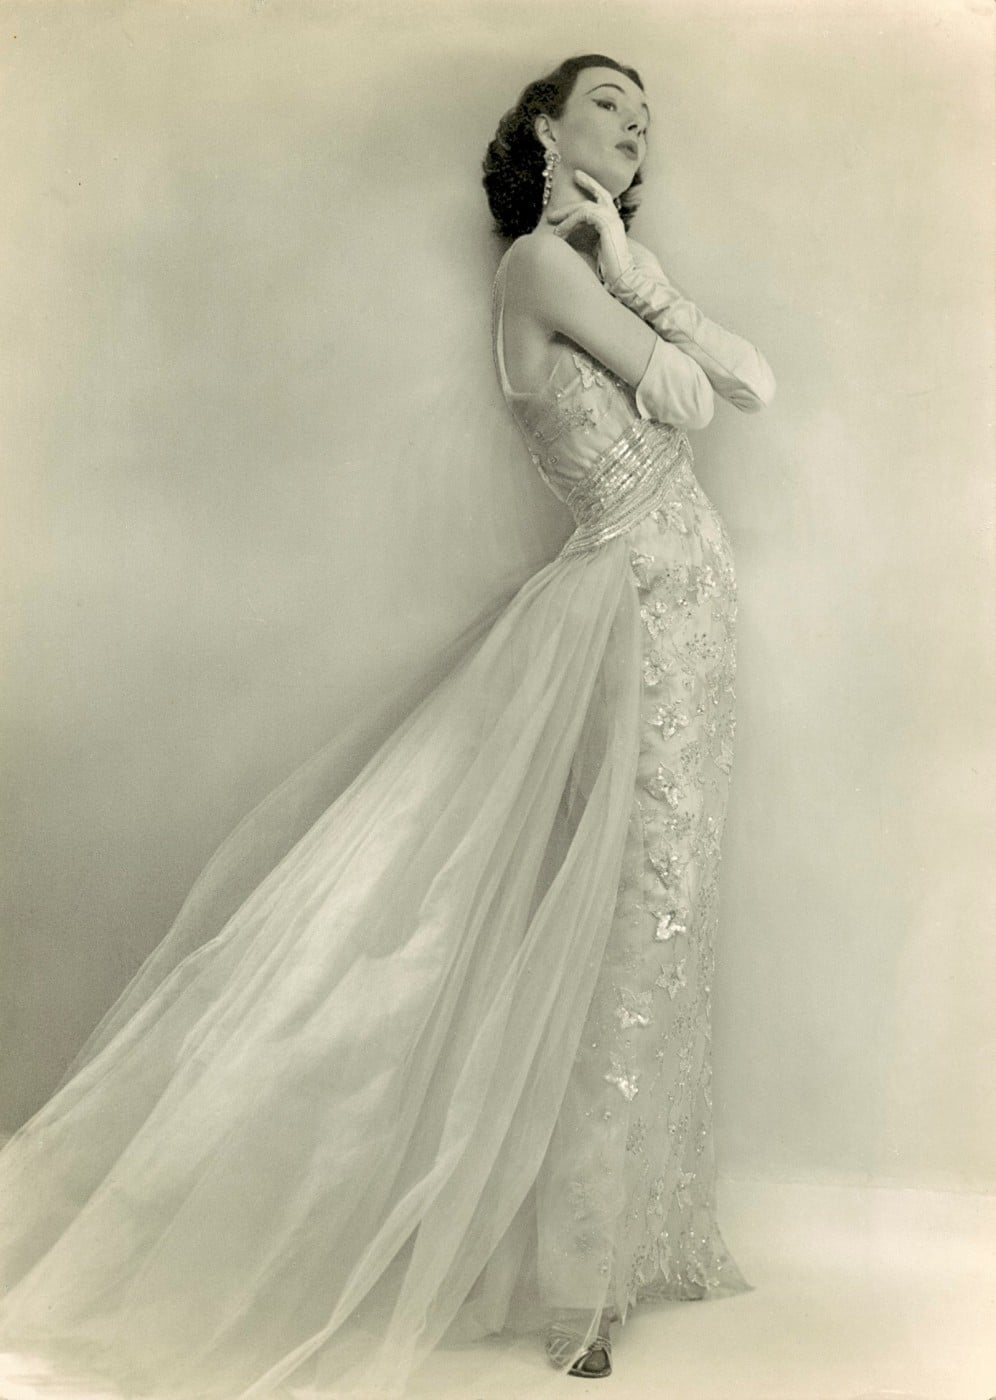 June modelling a pale pink beaded silk evening dress by Worth about 1952 -55 photograph by Michael Dunne Gloucester Cromwell Roads London